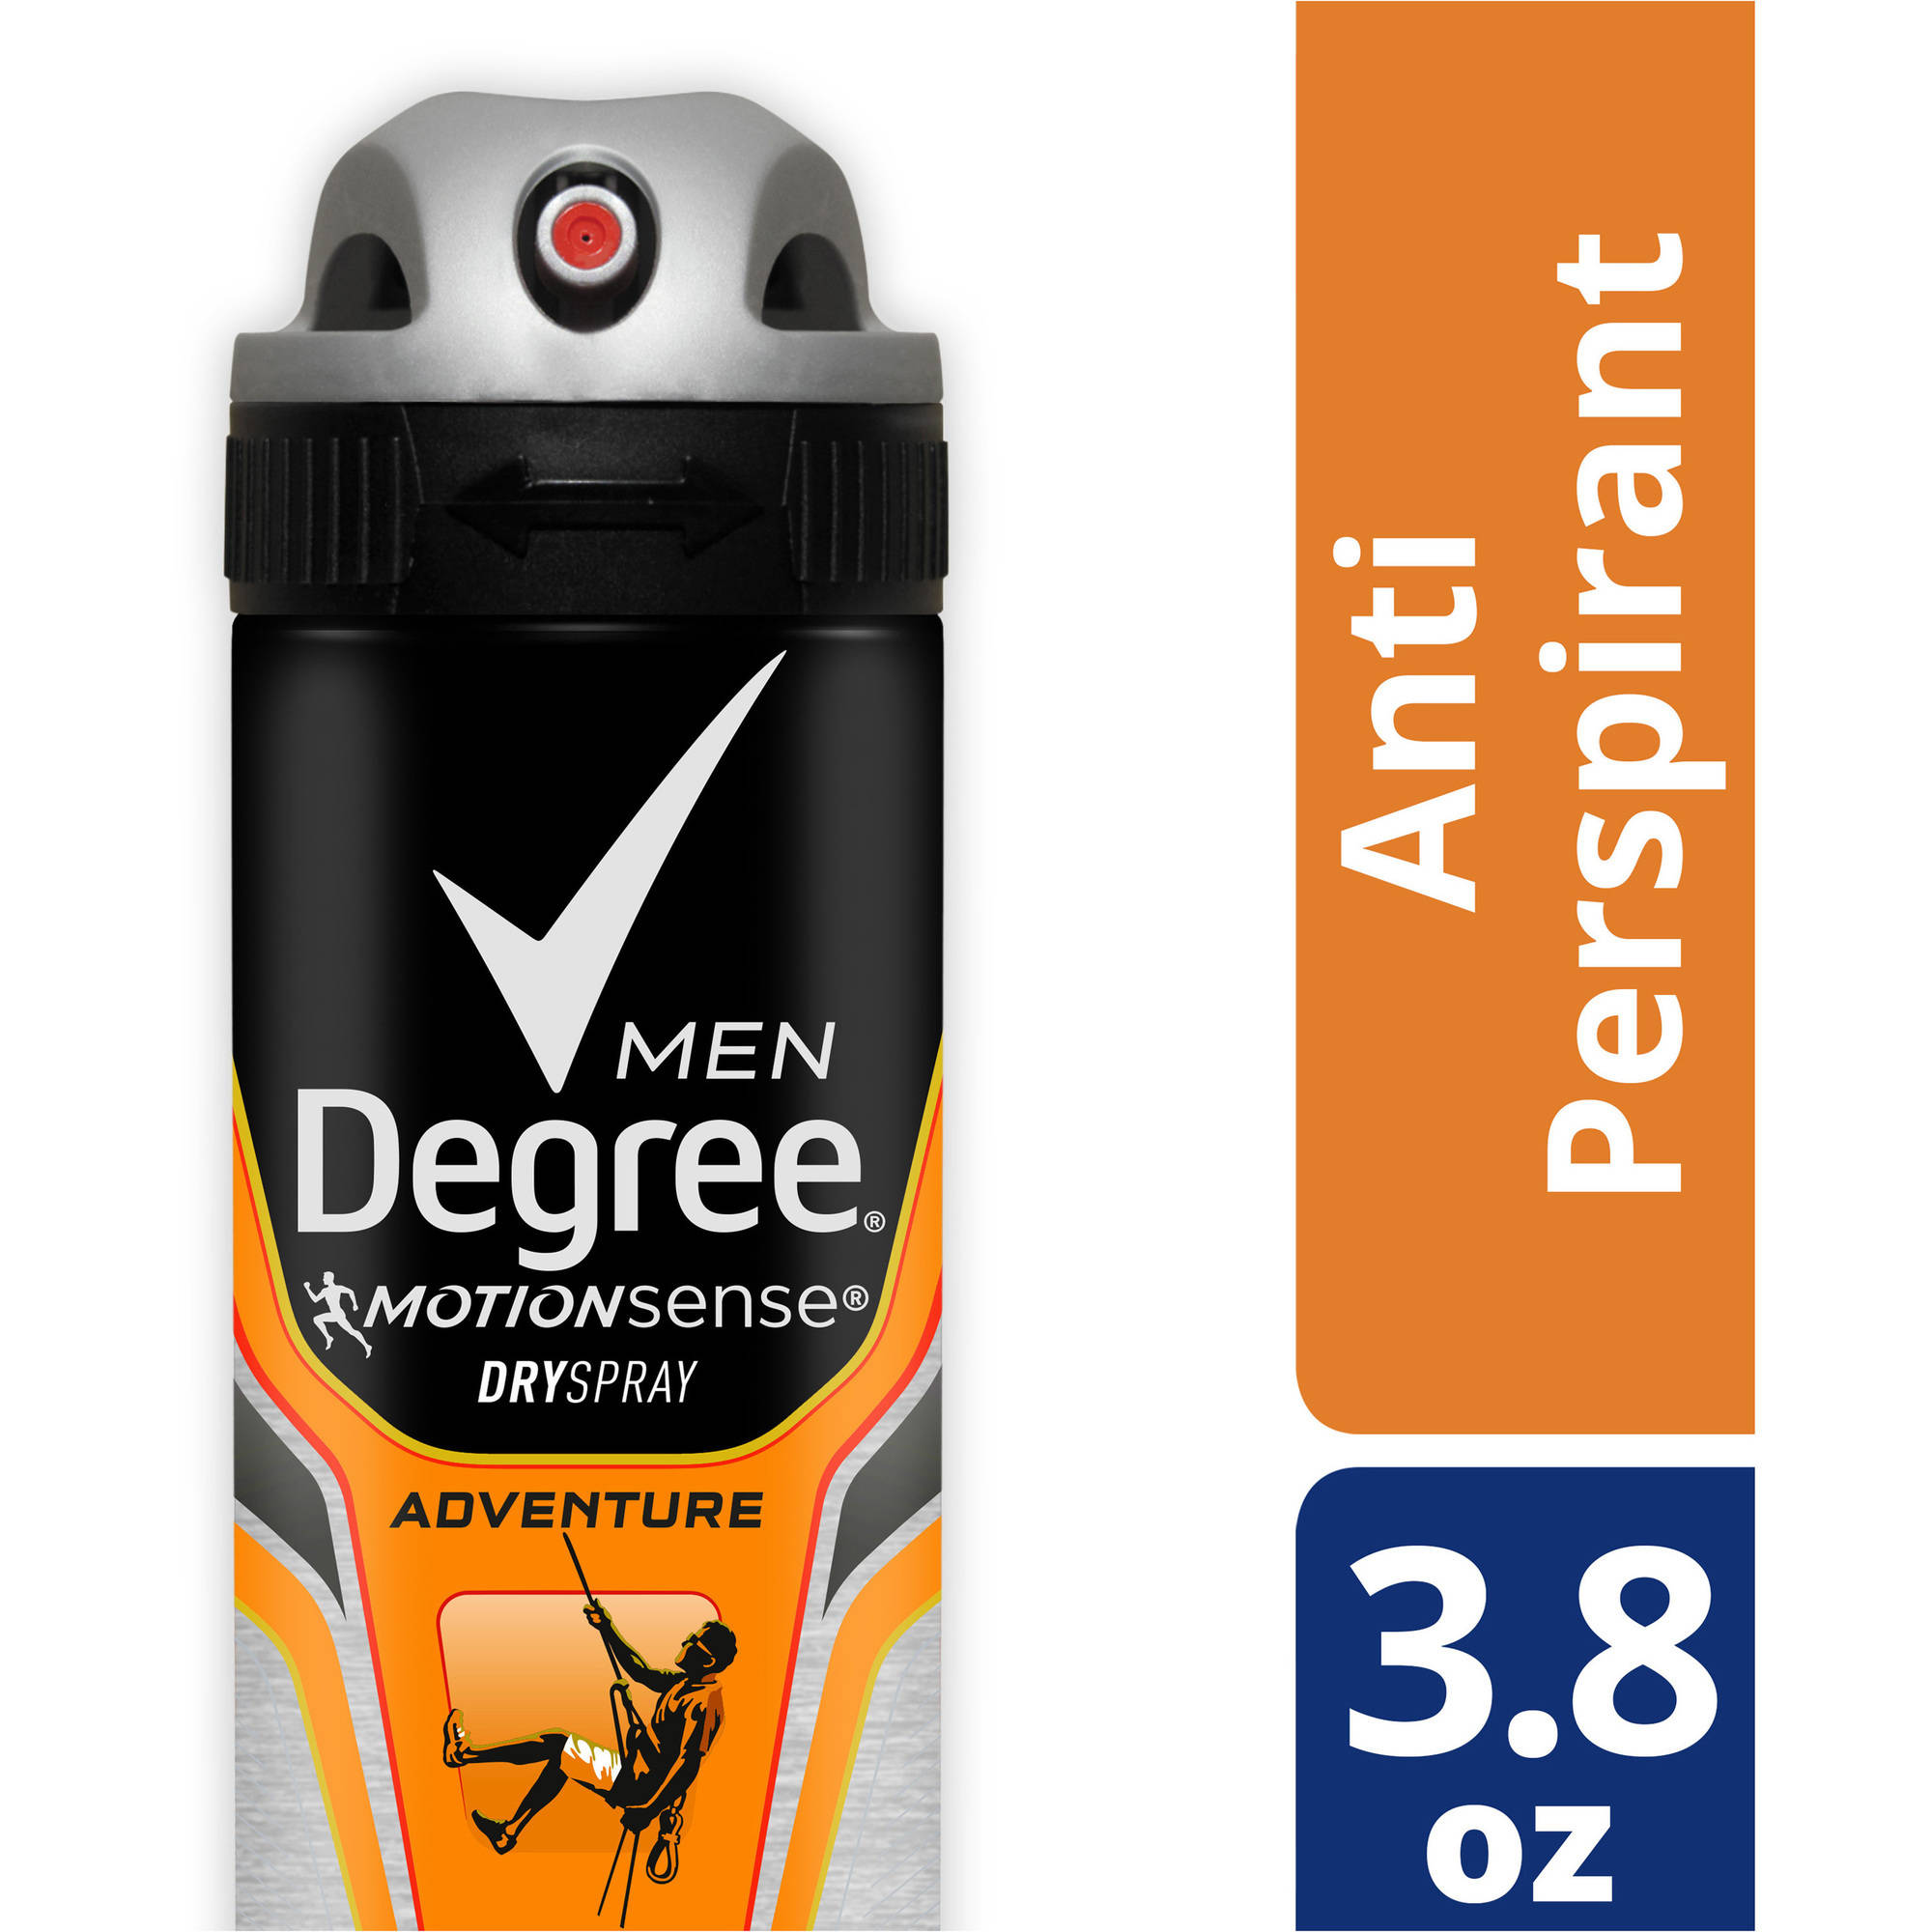 Degree Men MotionSense Adventure Antiperspirant Deodorant Dry Spray, 3.8 oz